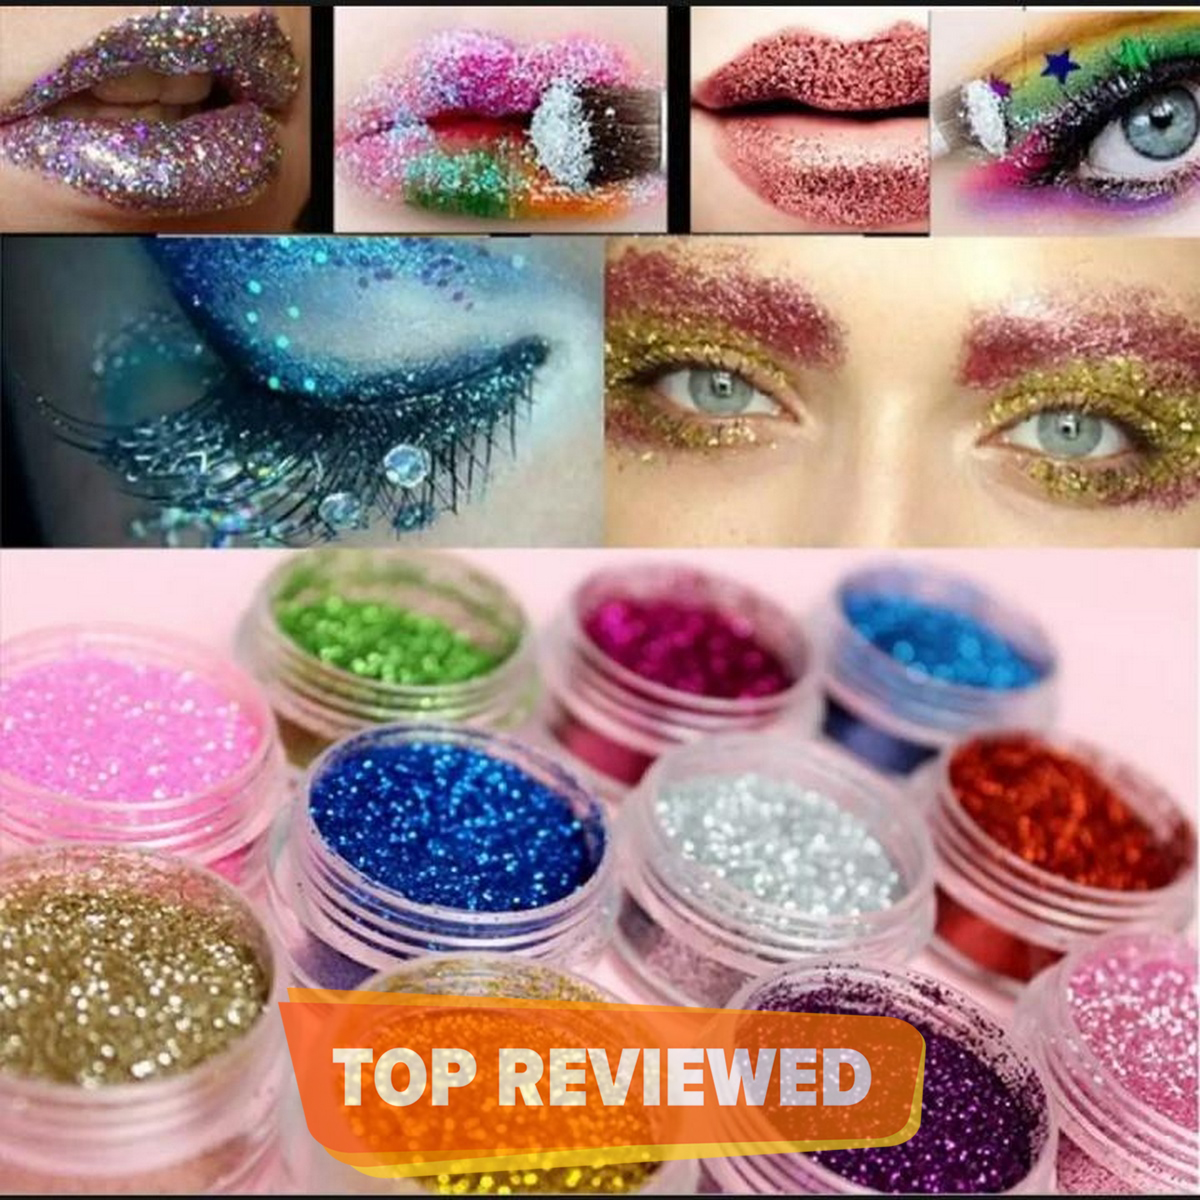 Pack Of 12 - Dusty Glitter Eyeshadows super festival makeup shimmer and shine face jewels Make up Cosmetics pigment body face & eye Shadow